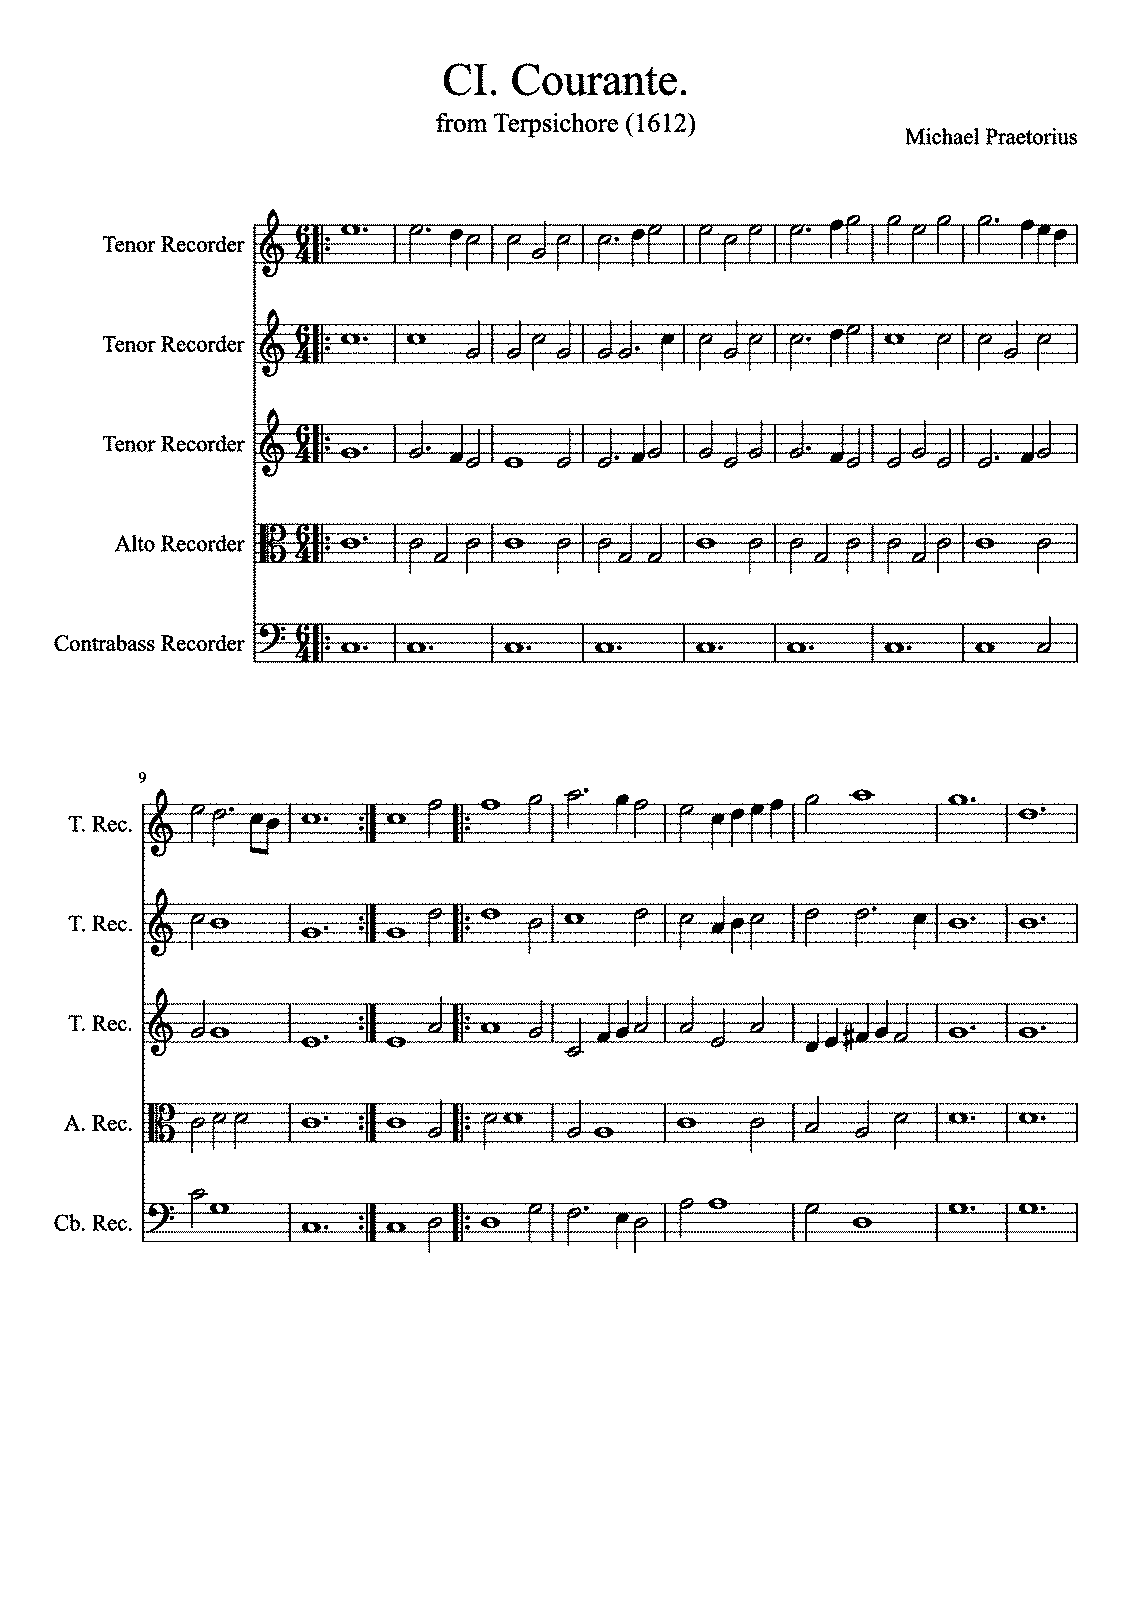 PMLP592349-CI Courante from Terpsichore Michael Praetorius 1612.pdf